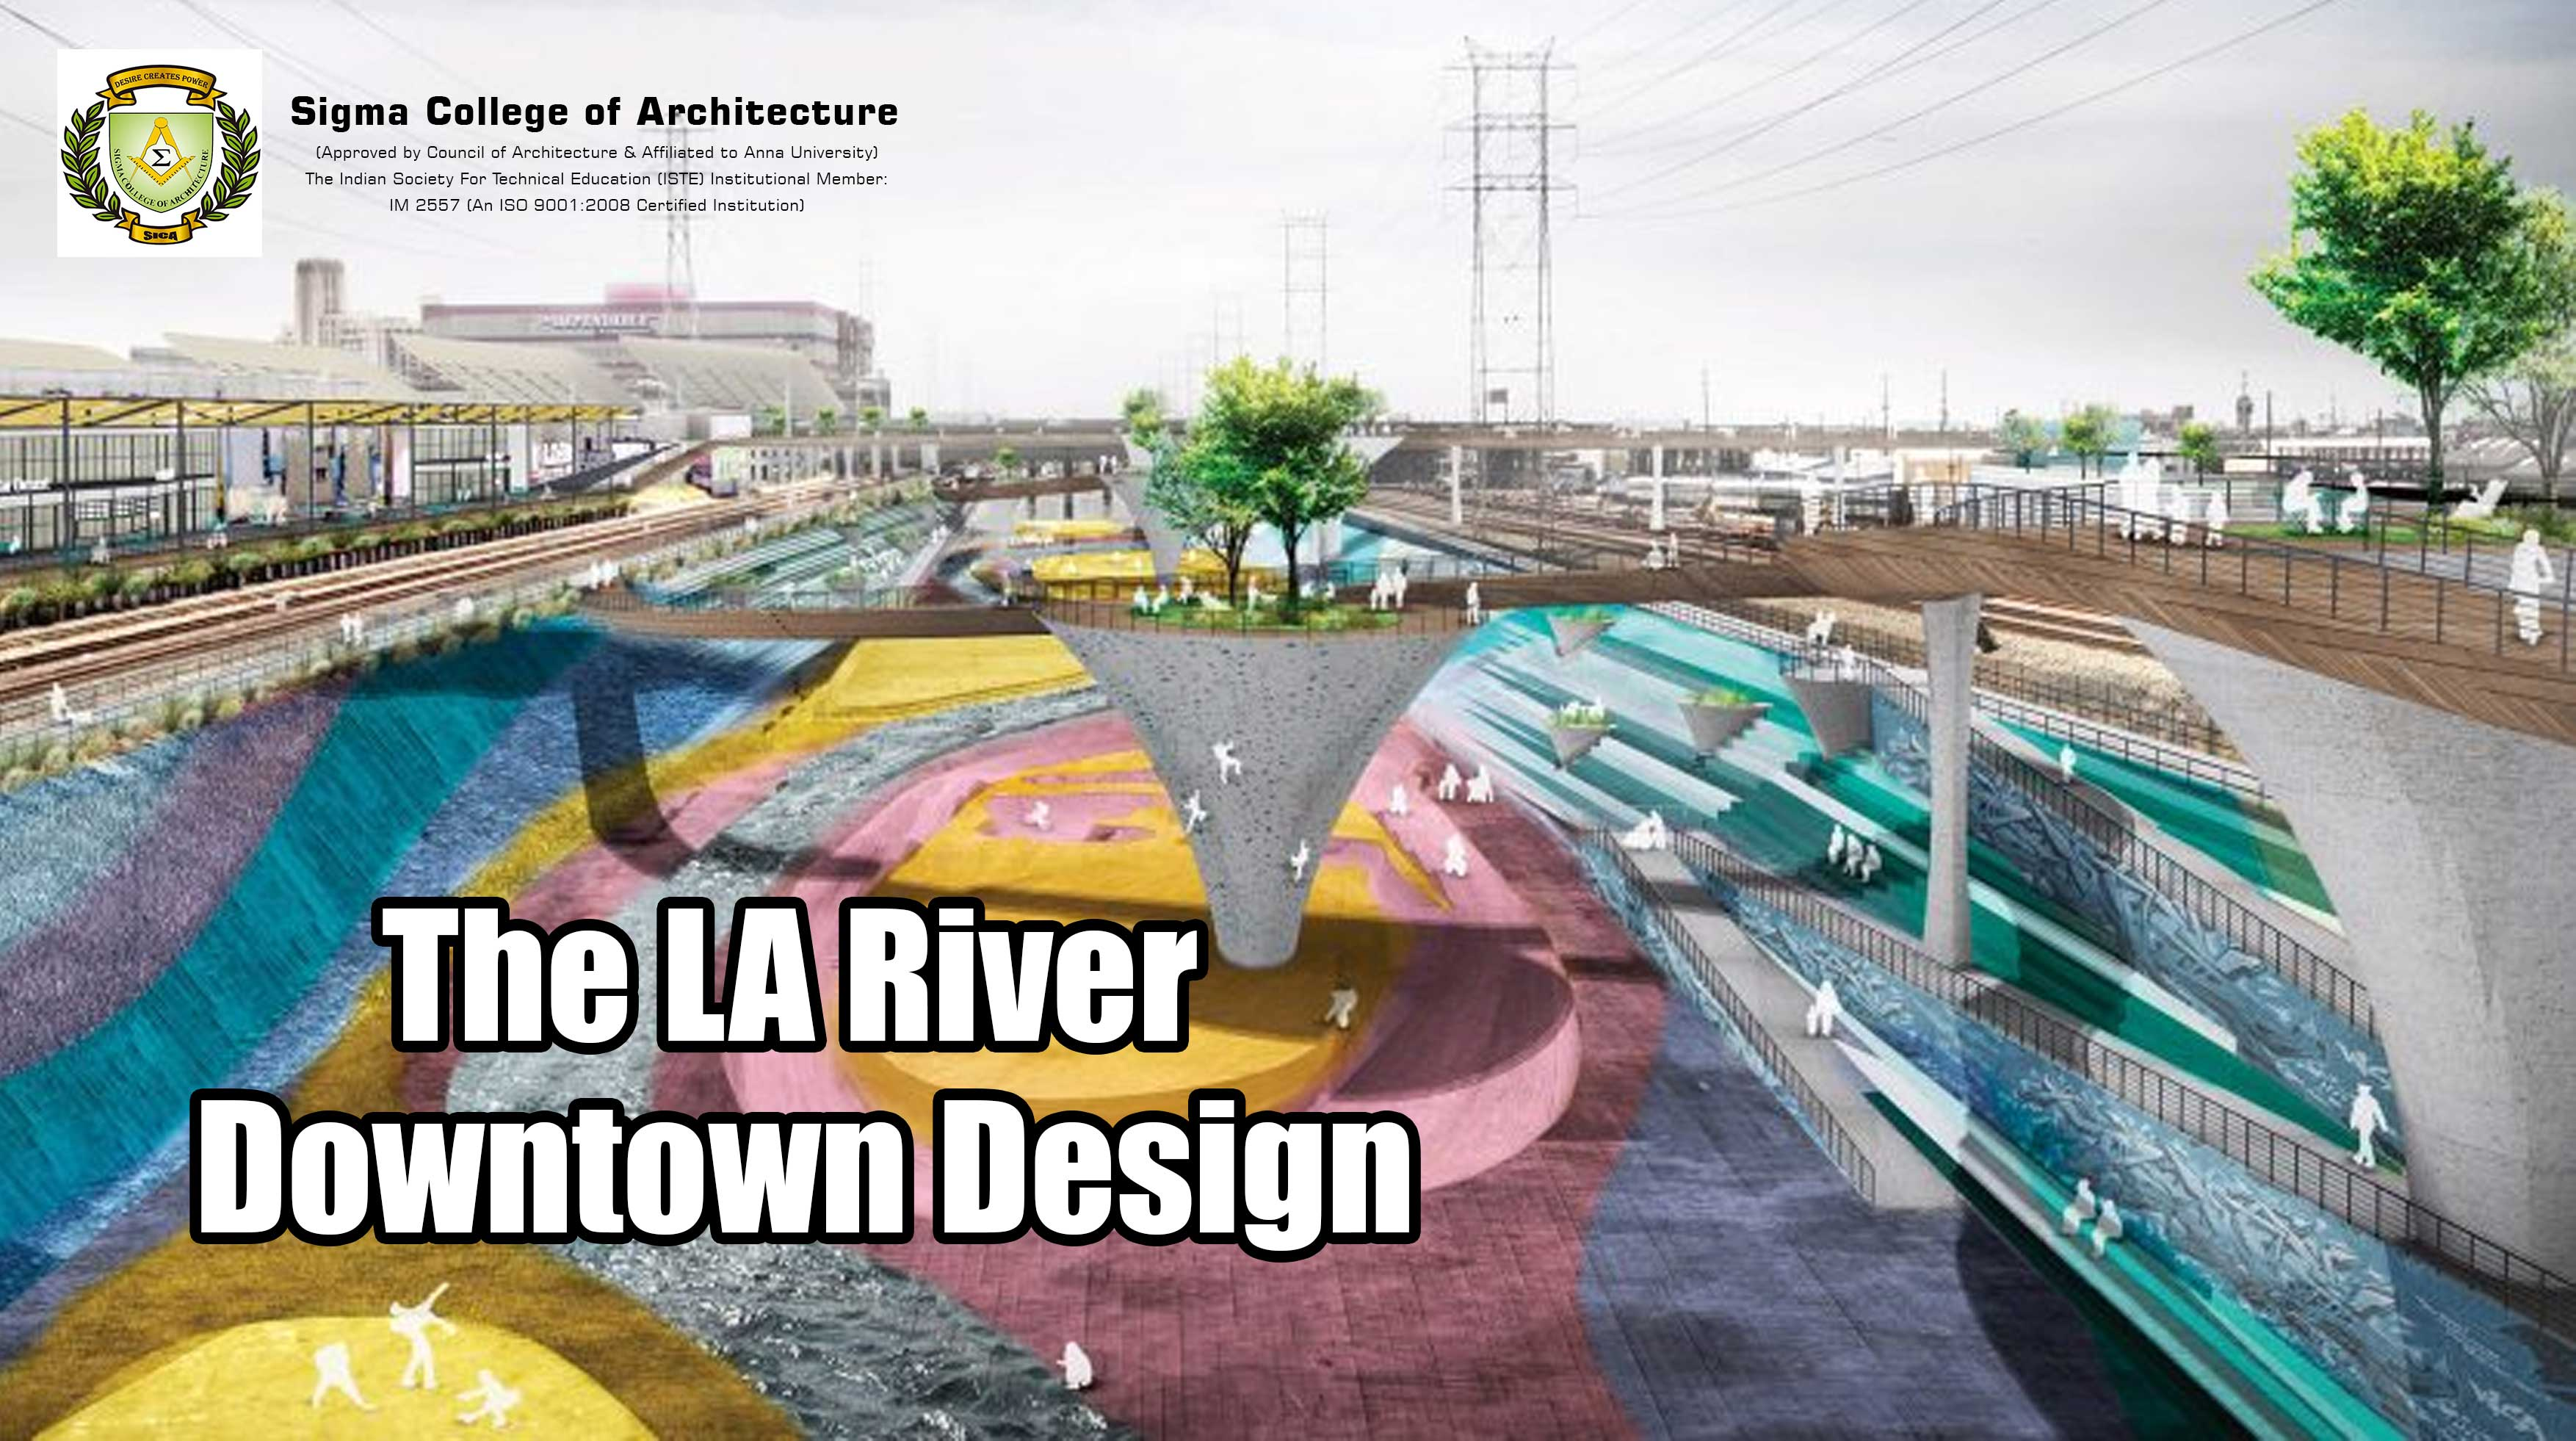 The LA River Downtown Design